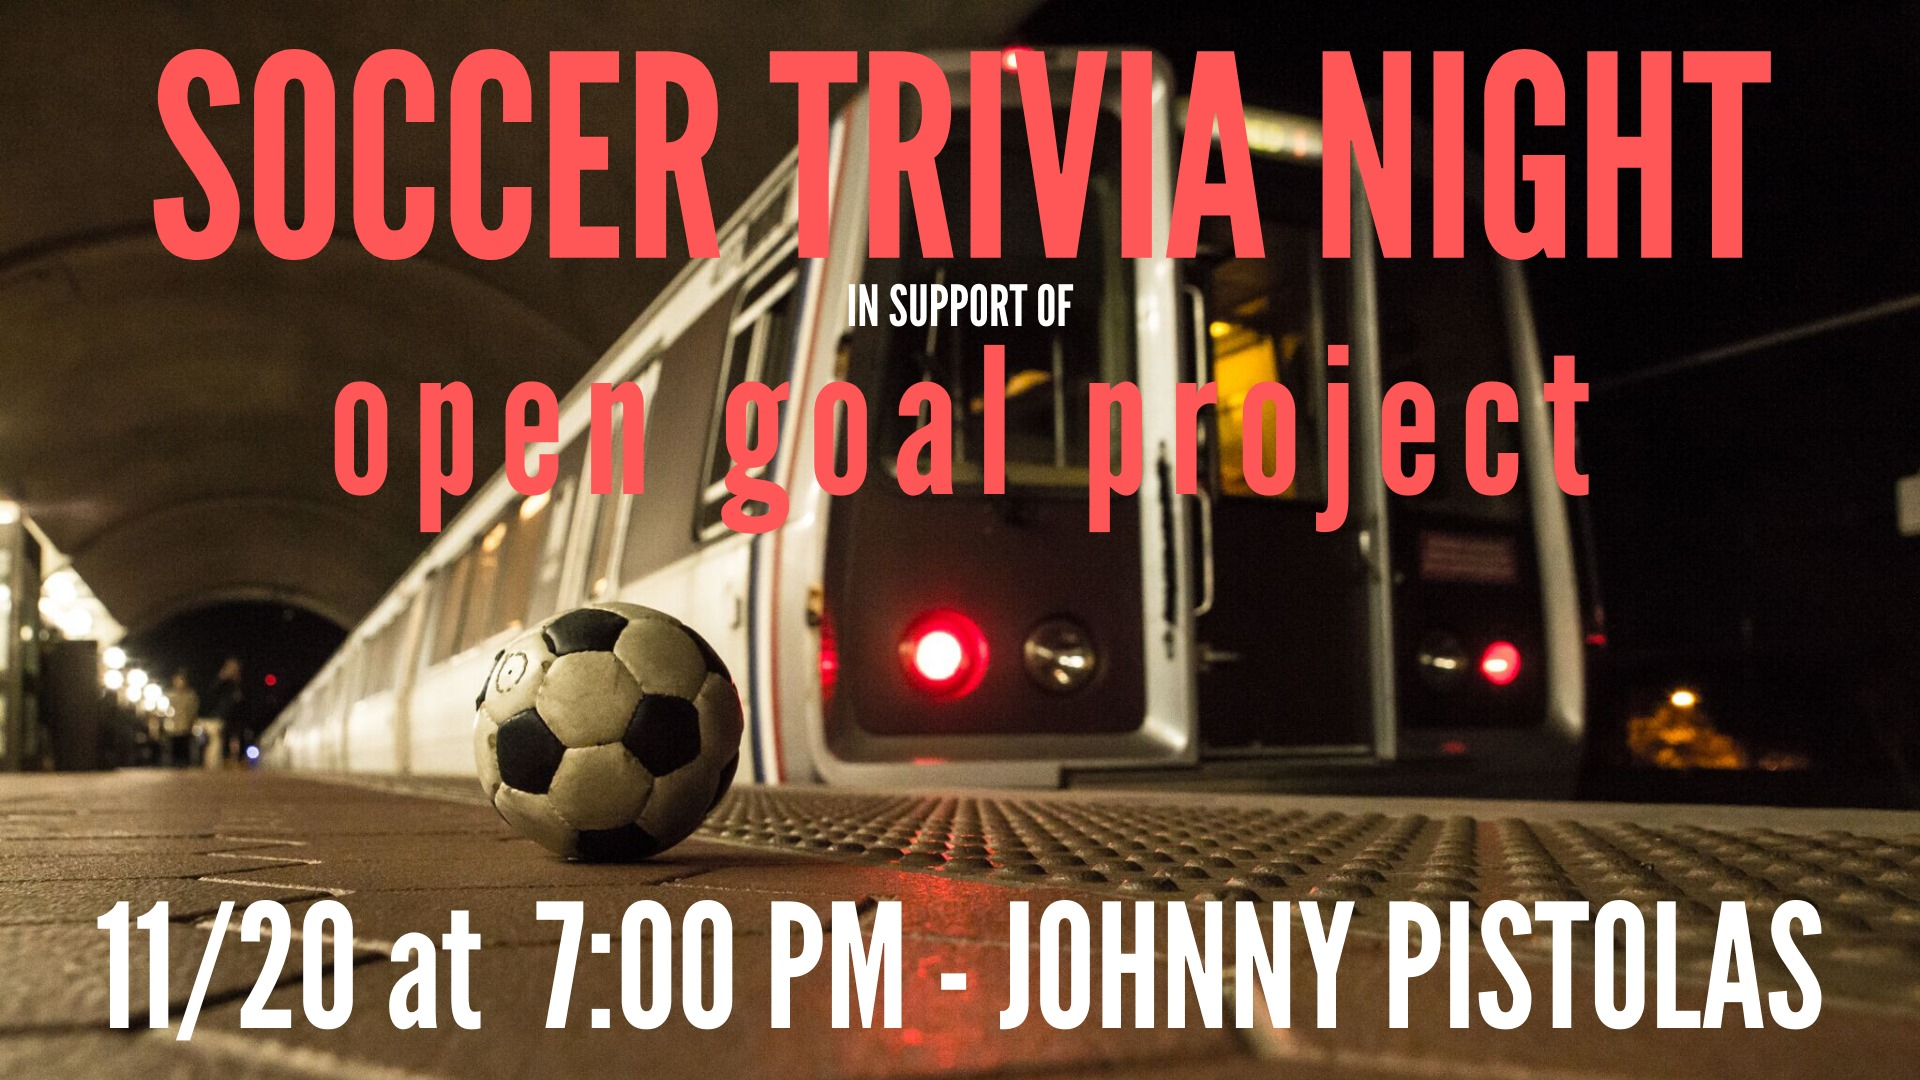 Soccer IQ and Margaritas at Soccer Trivia Night – Wednesday 11/20!